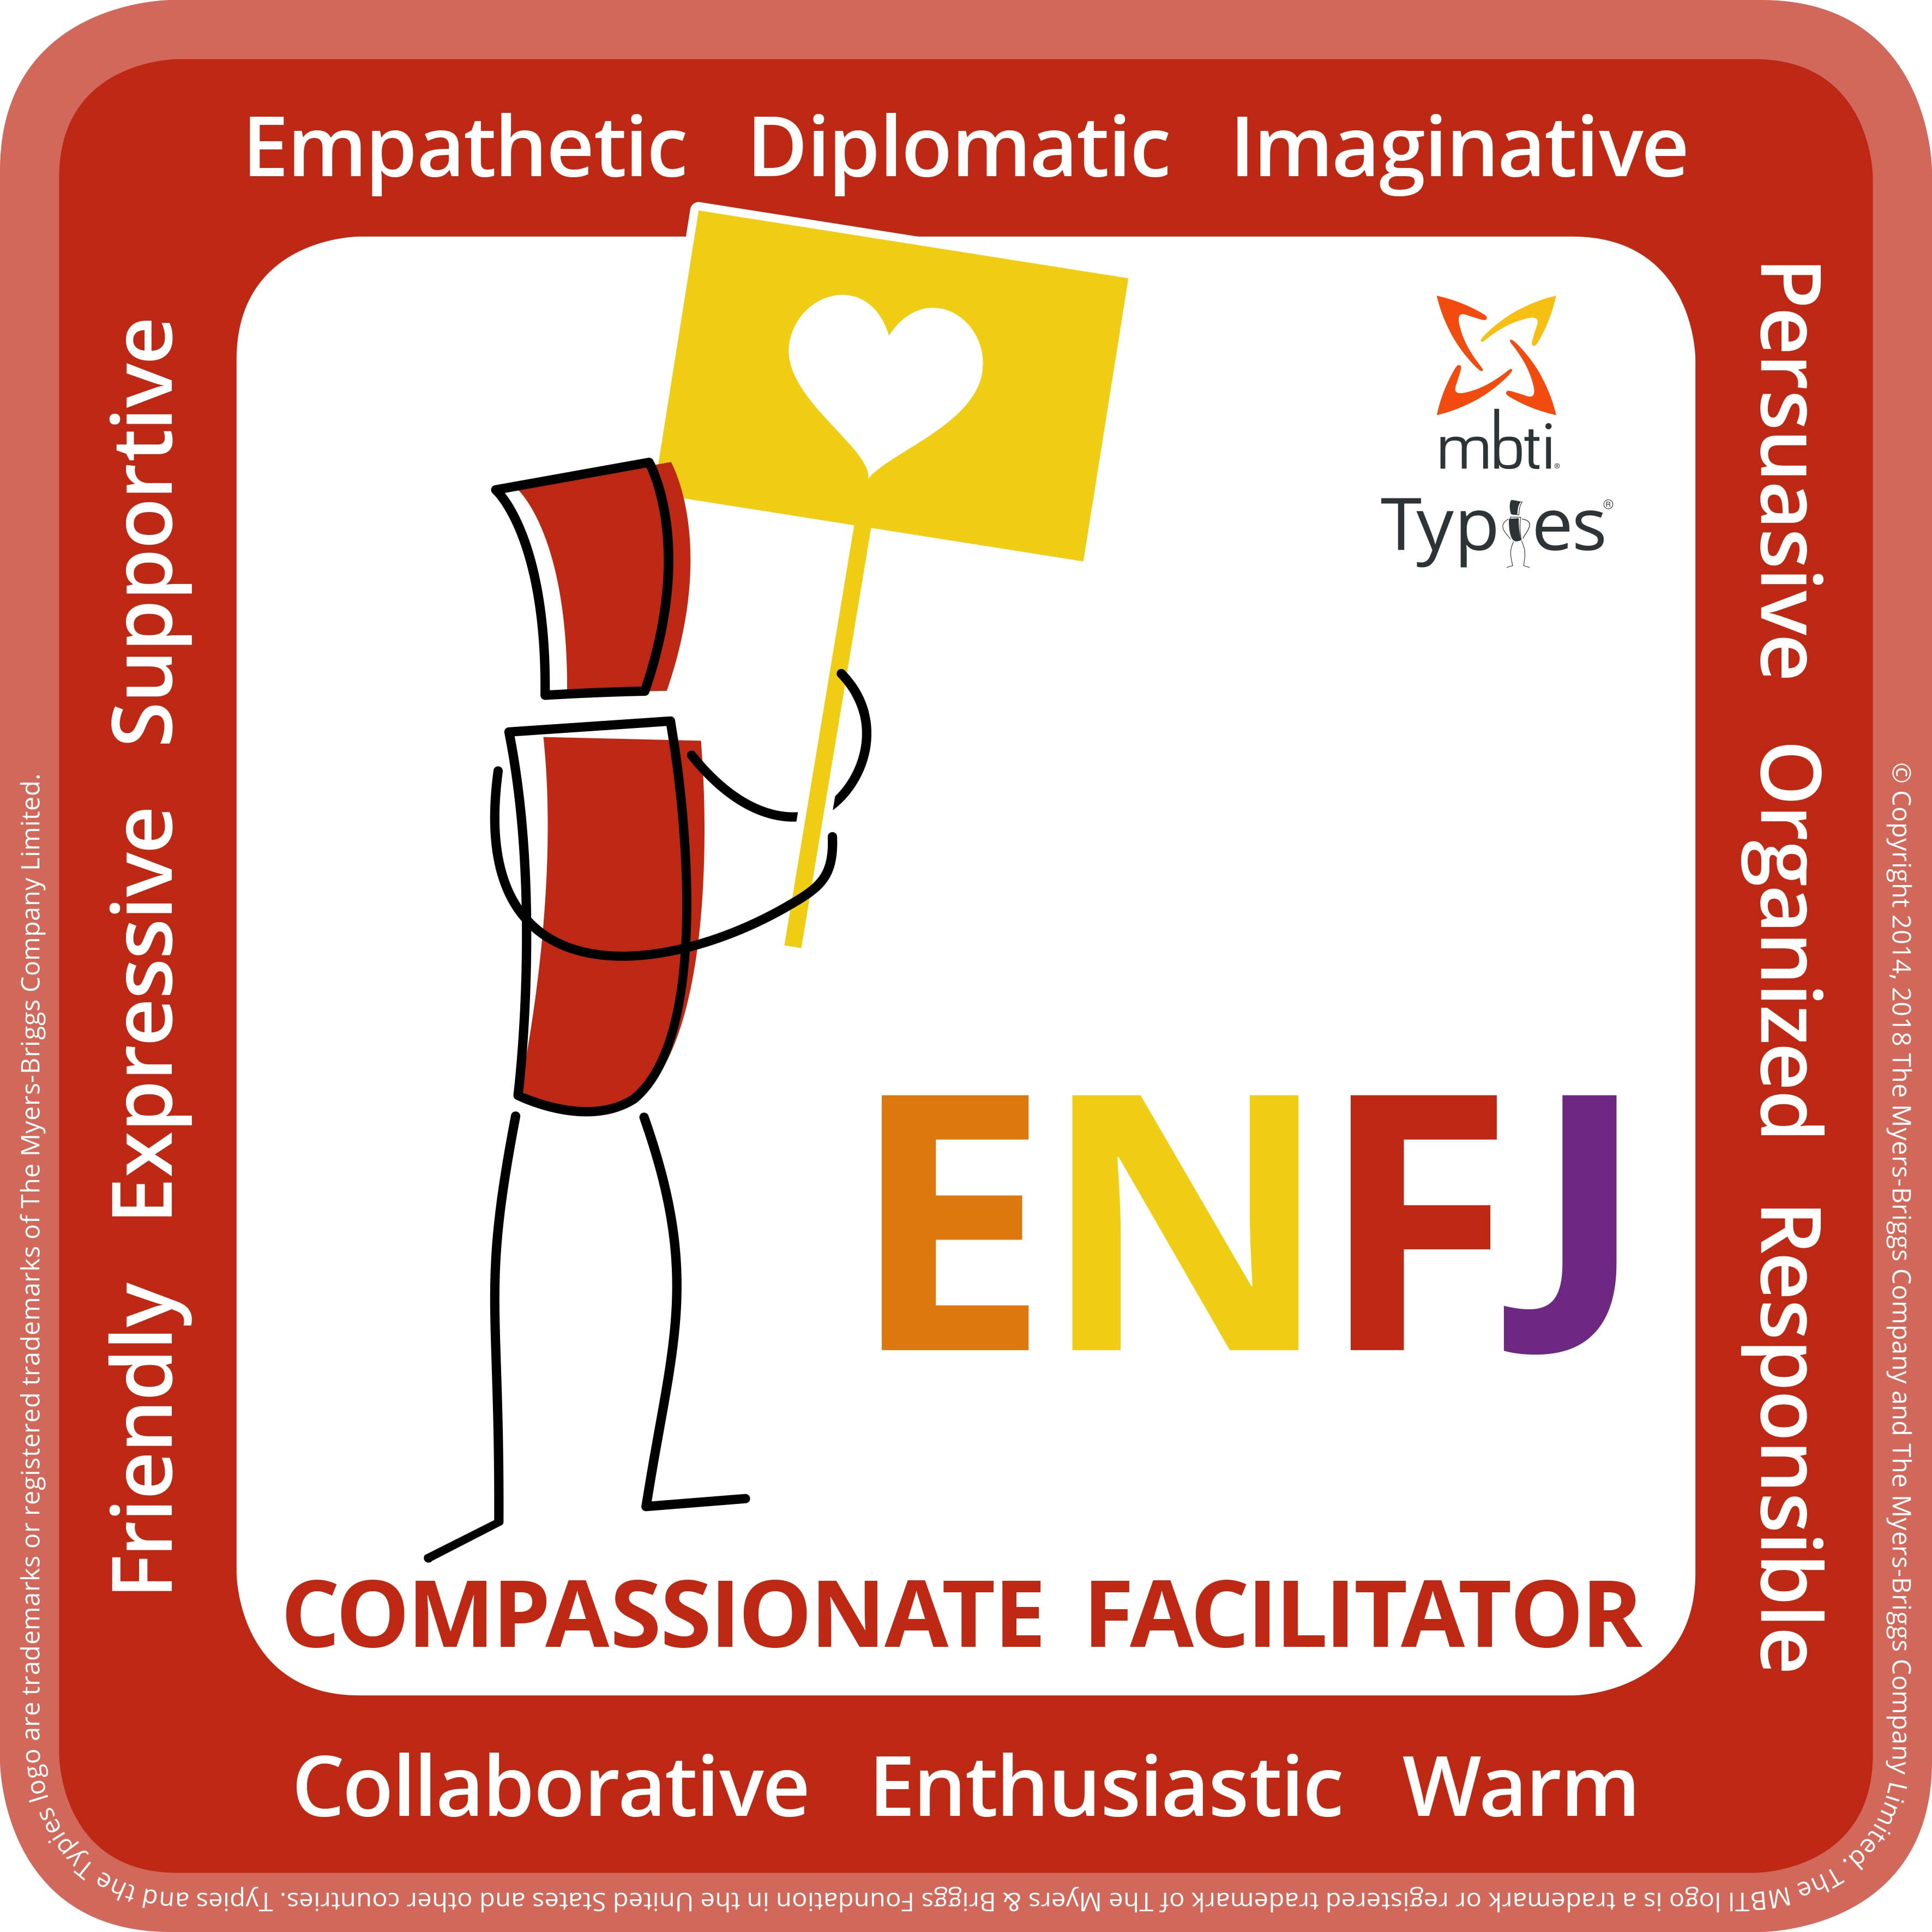 Typical characteristics of an ENFJ